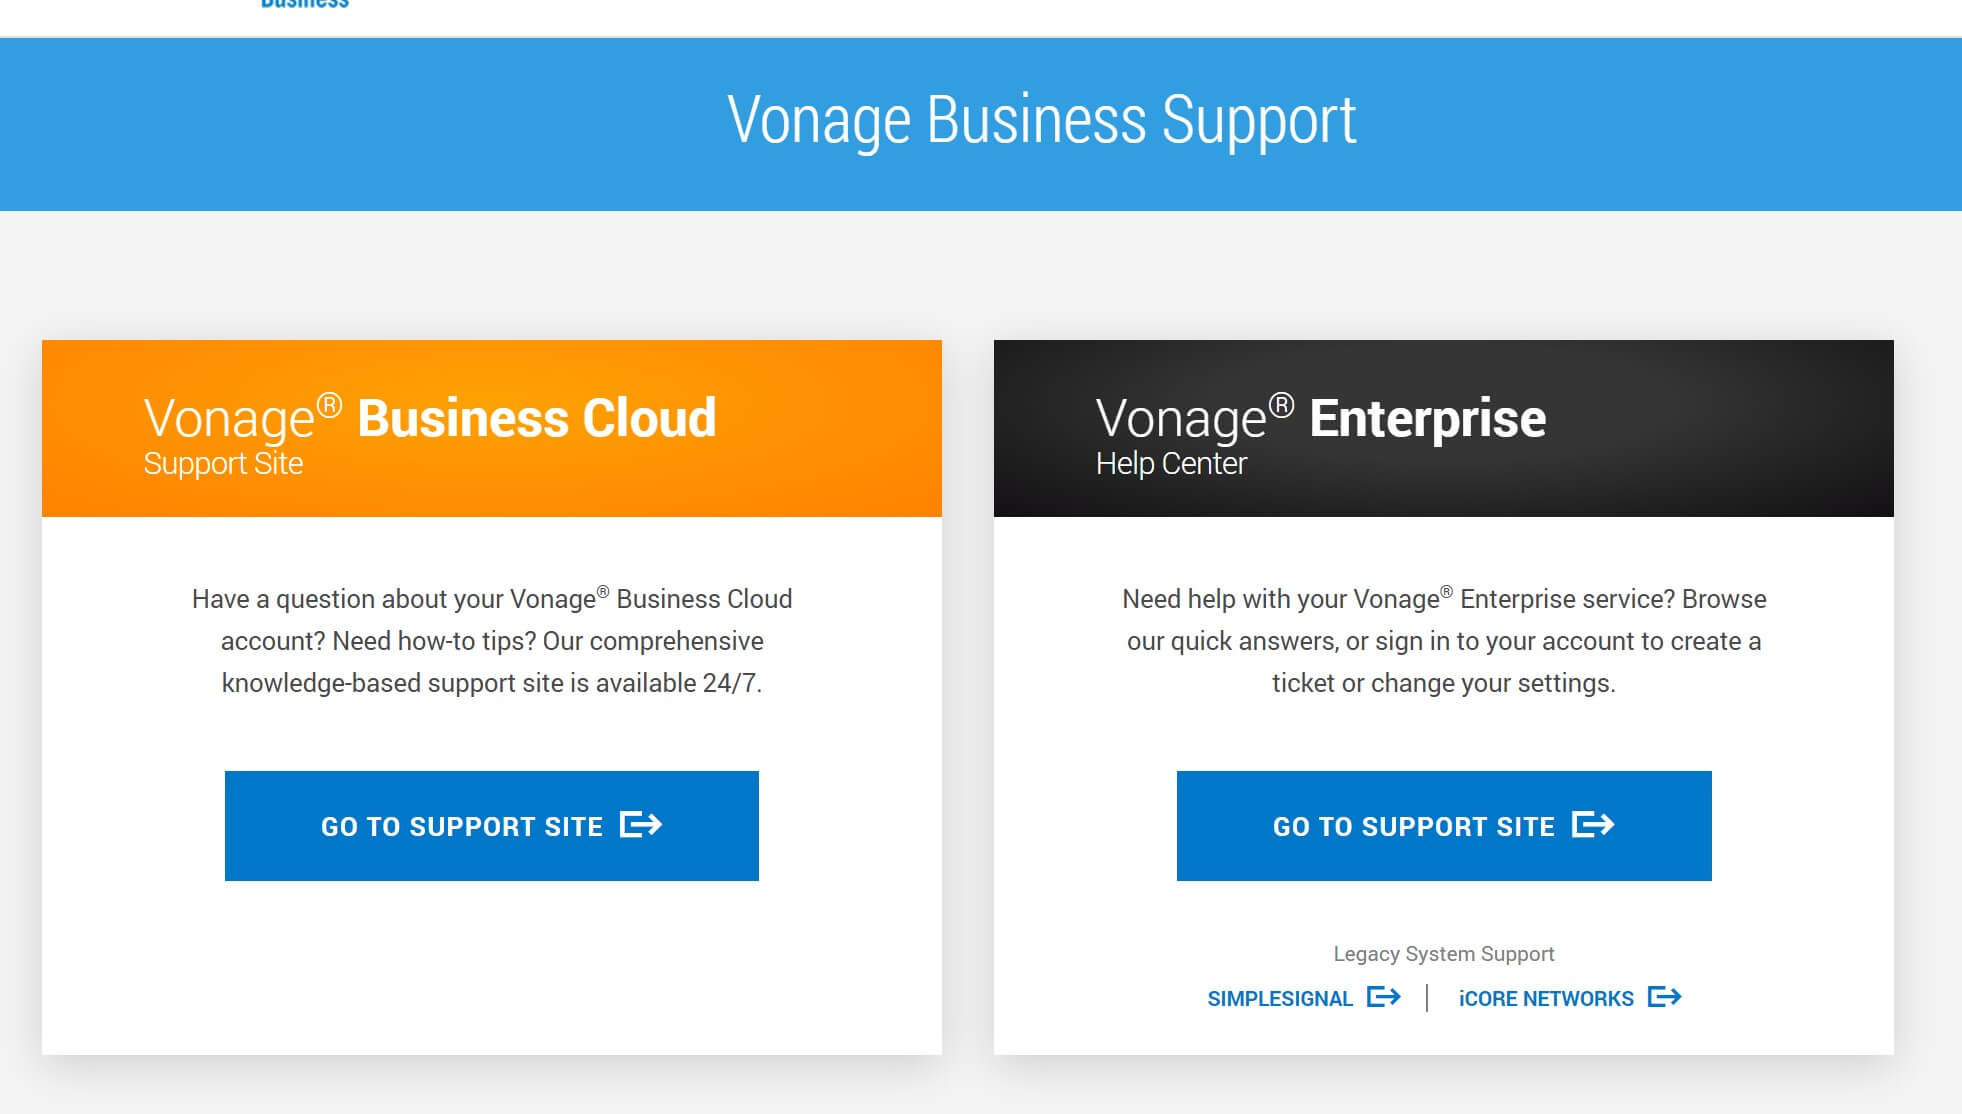 Vonage Business Support